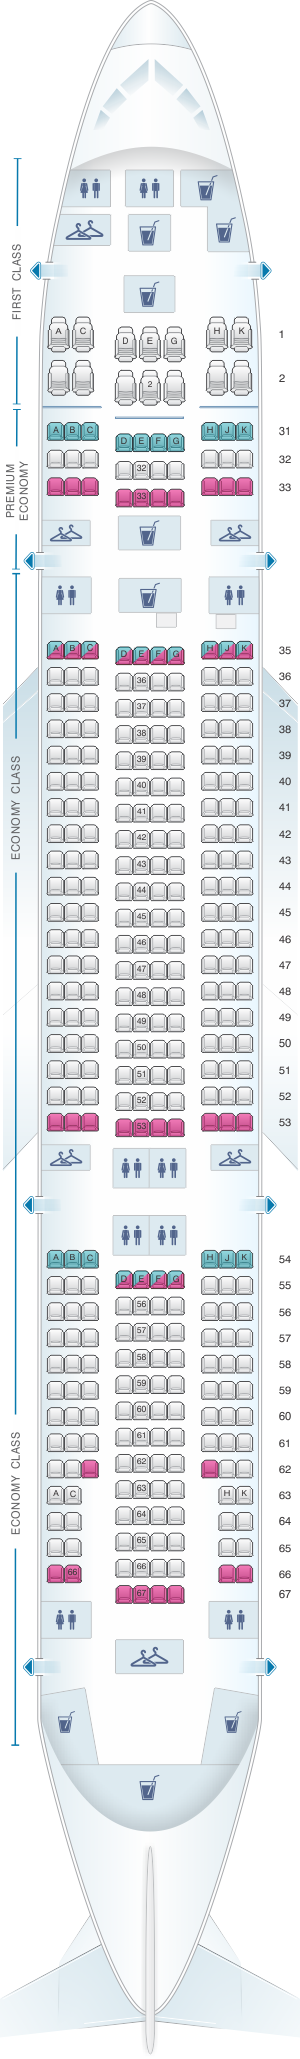 Seat map for China Southern Airlines Boeing B777A